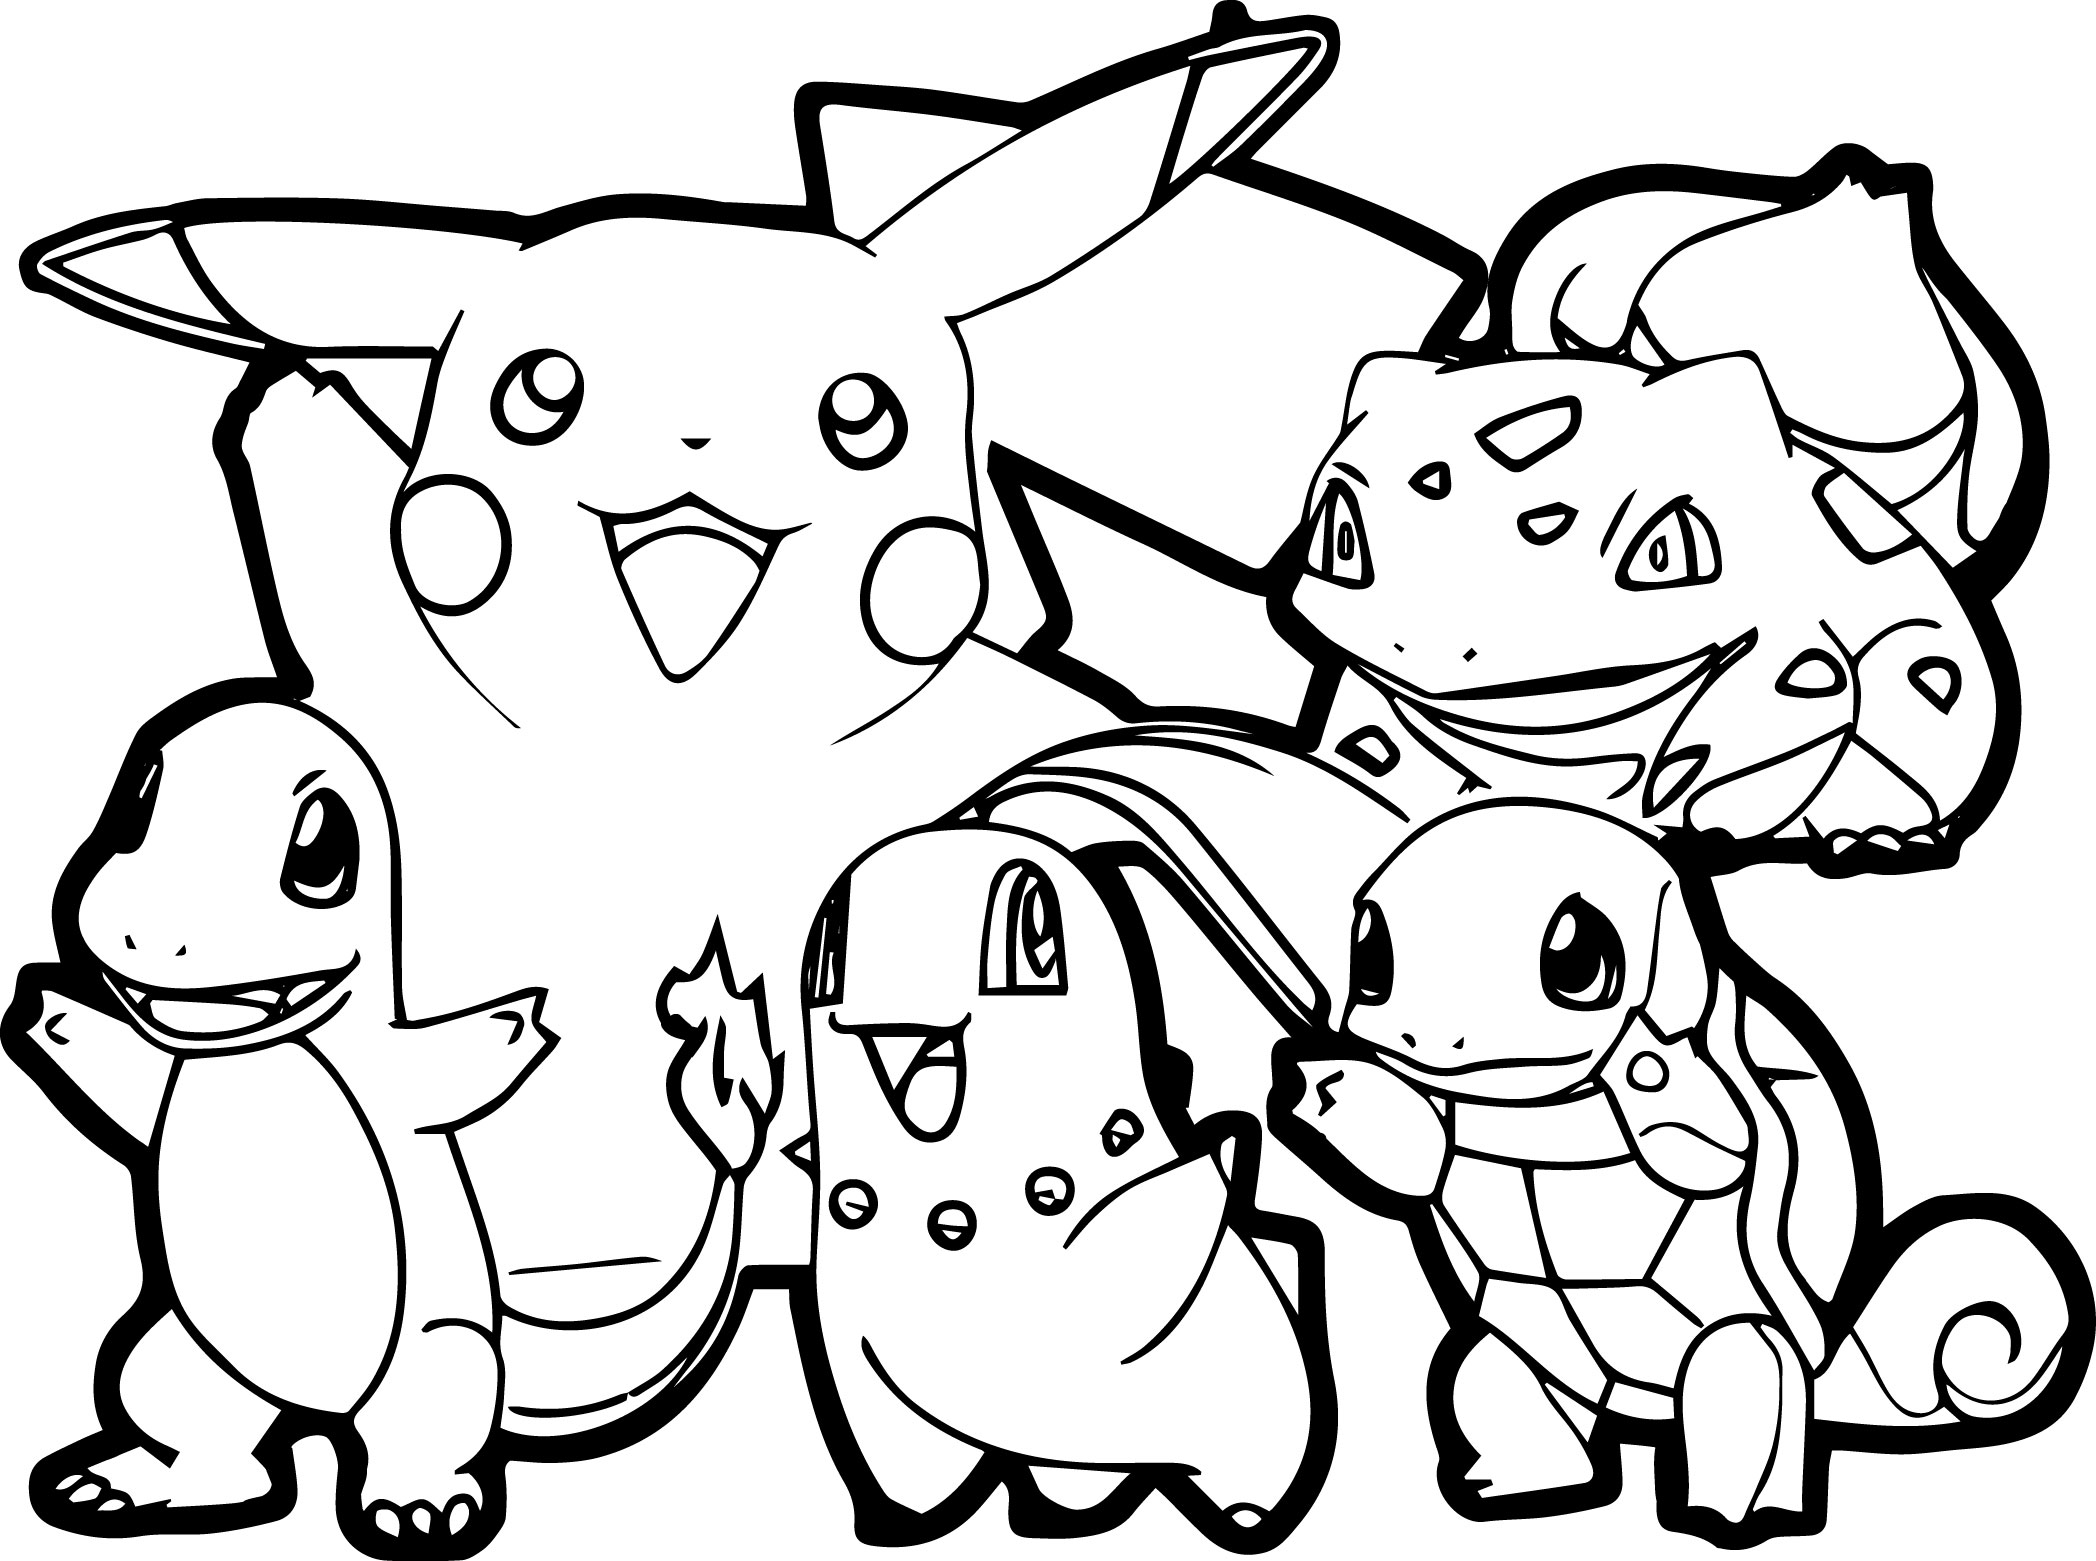 2096x1561 Free Prin Unique Pokemon Coloring Pages